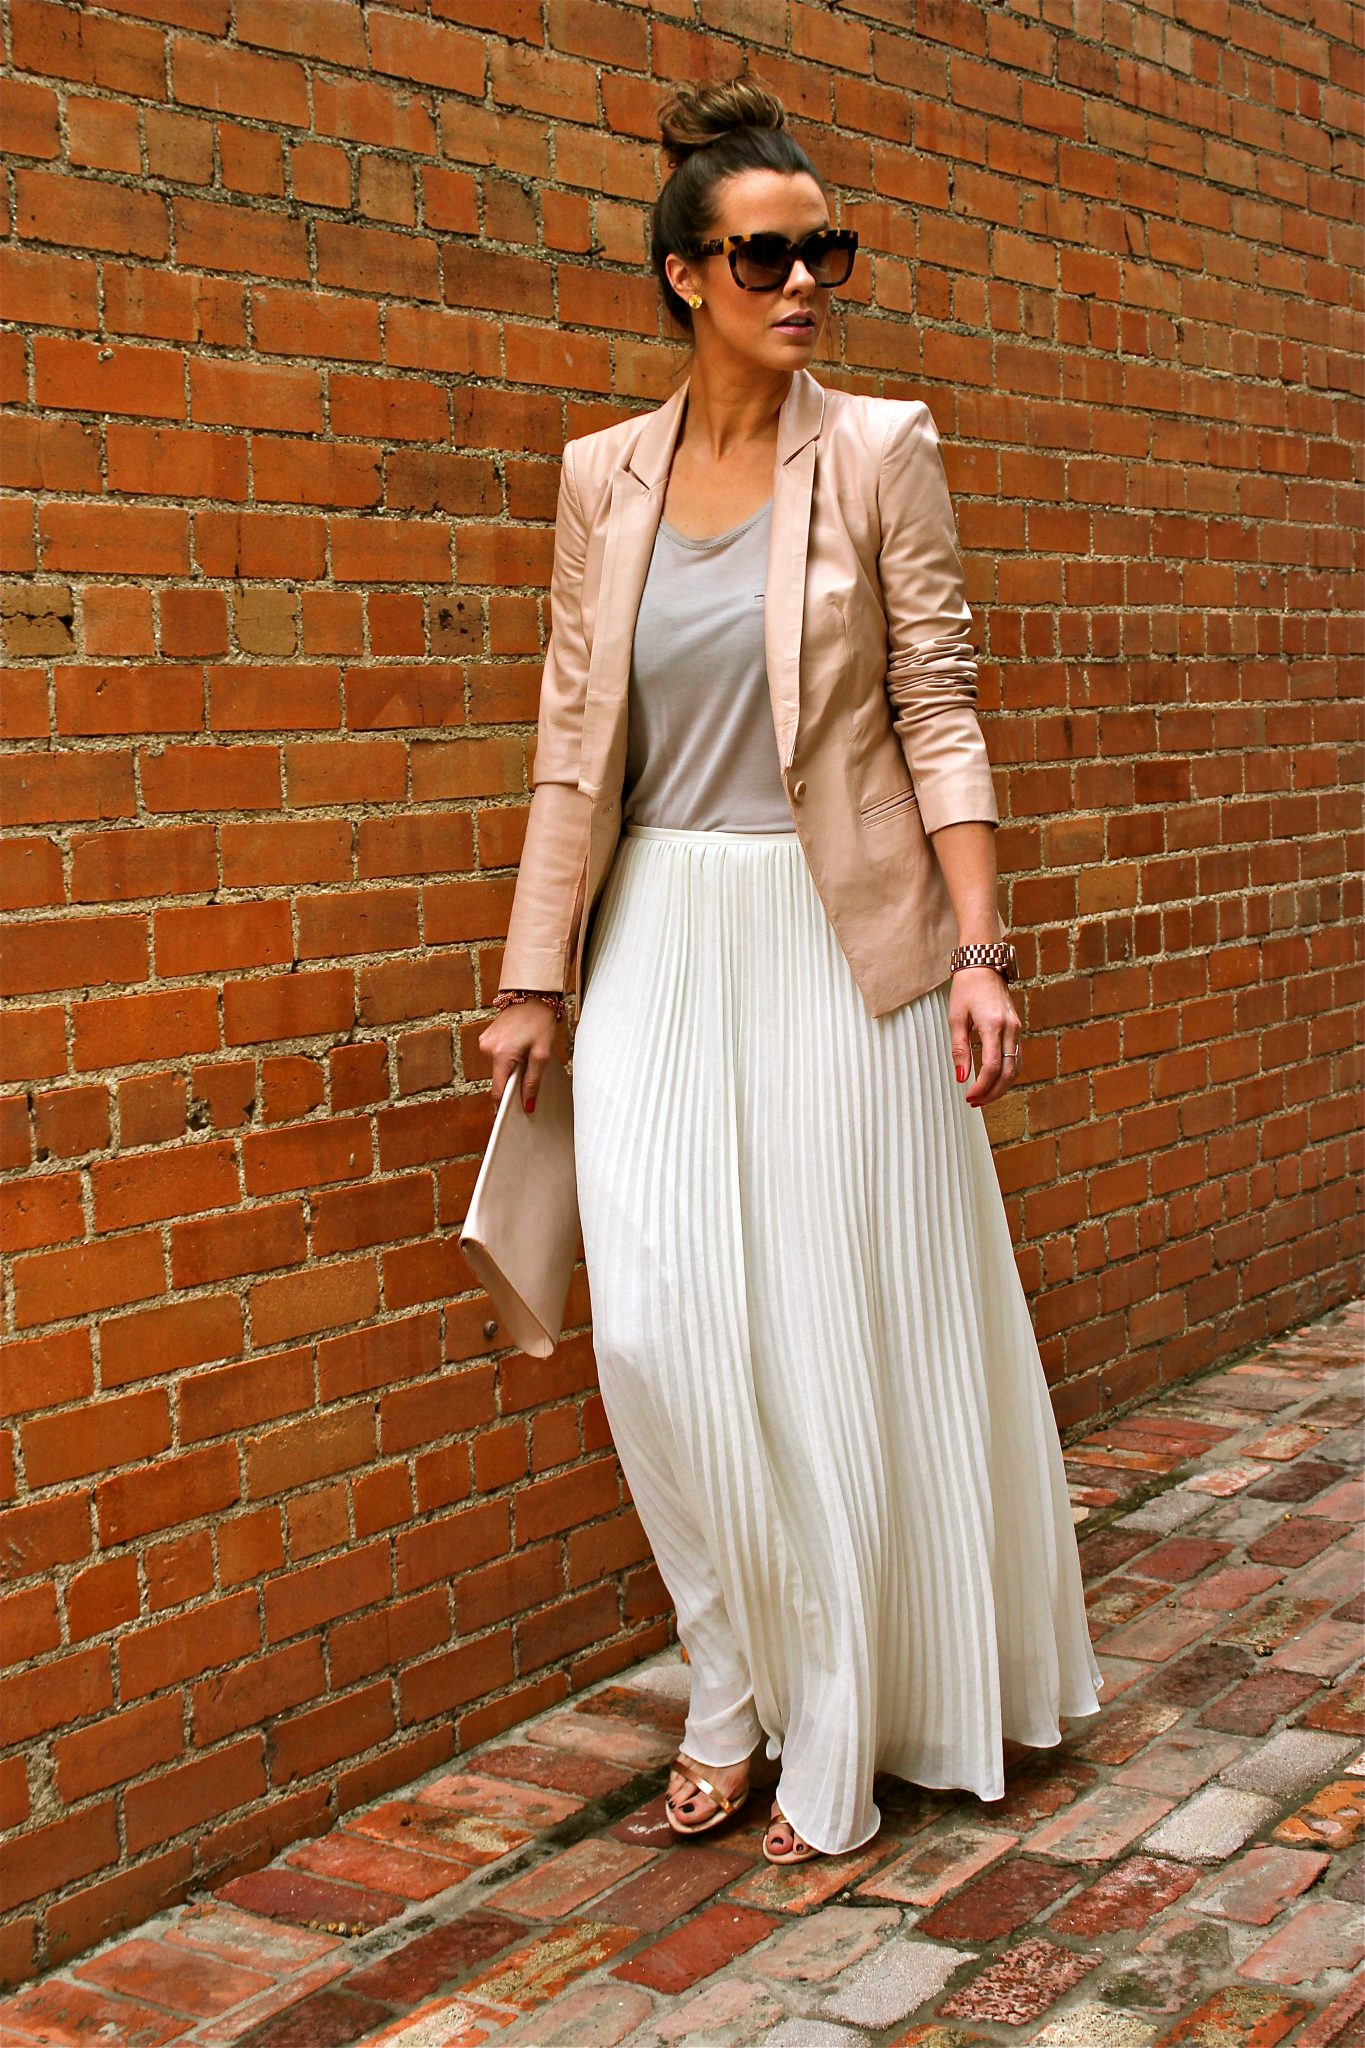 The New Neutrals Kerrently By Courtney Kerr Blazer Black Bebe Old But Love This Current White Version Tank Zara Skirt Theory Similar From Outnet Shoes Clutch